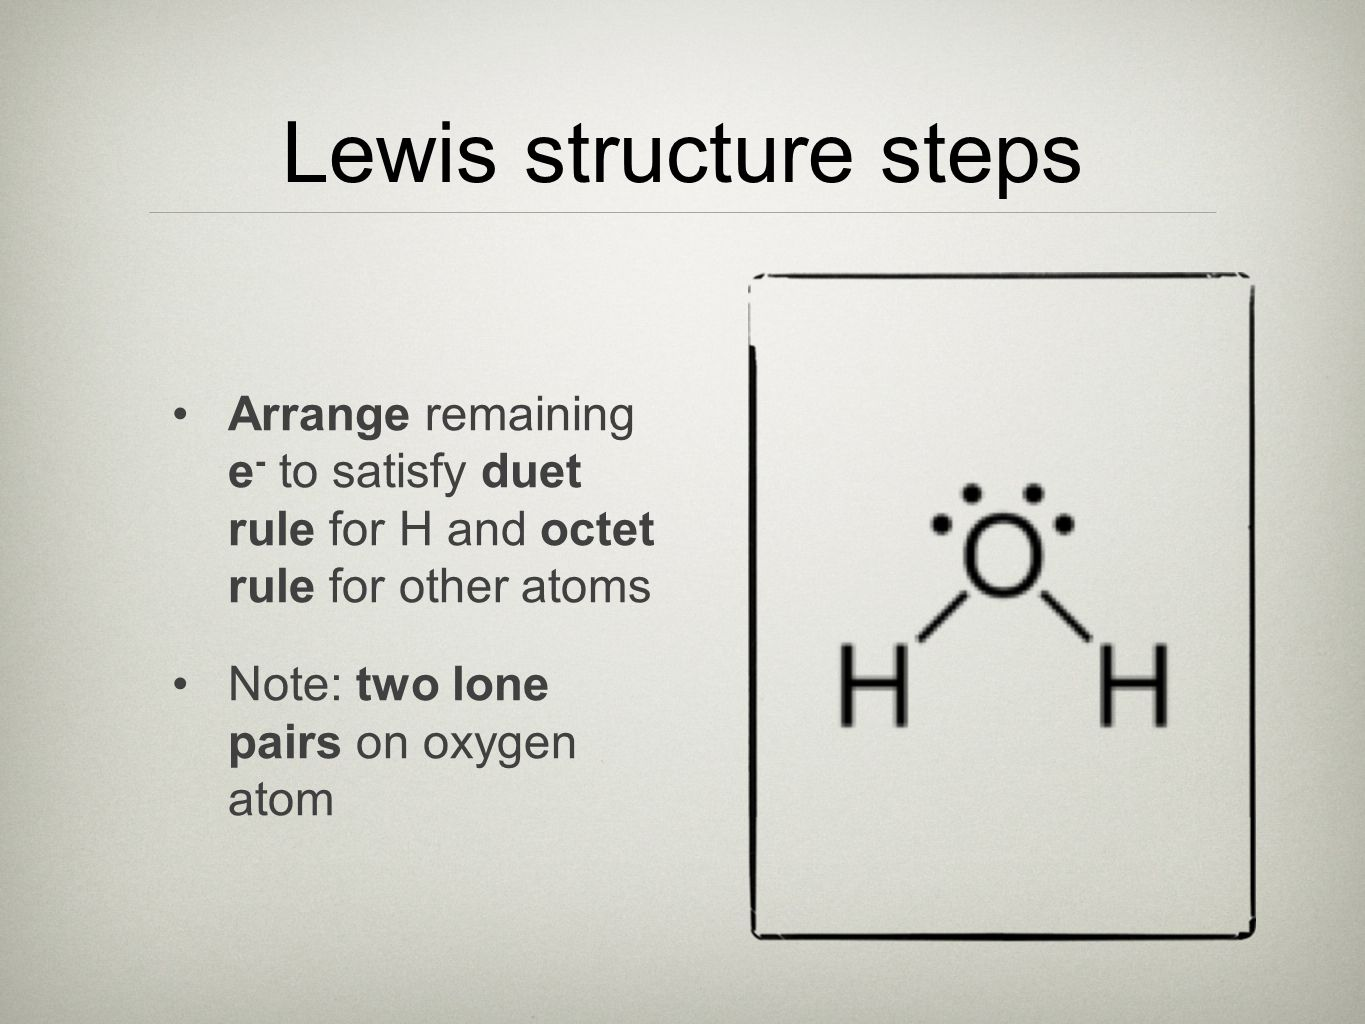 Lewis structure steps Arrange remaining e - to satisfy duet rule for H and octet rule for other atoms Note: two lone pairs on oxygen atom